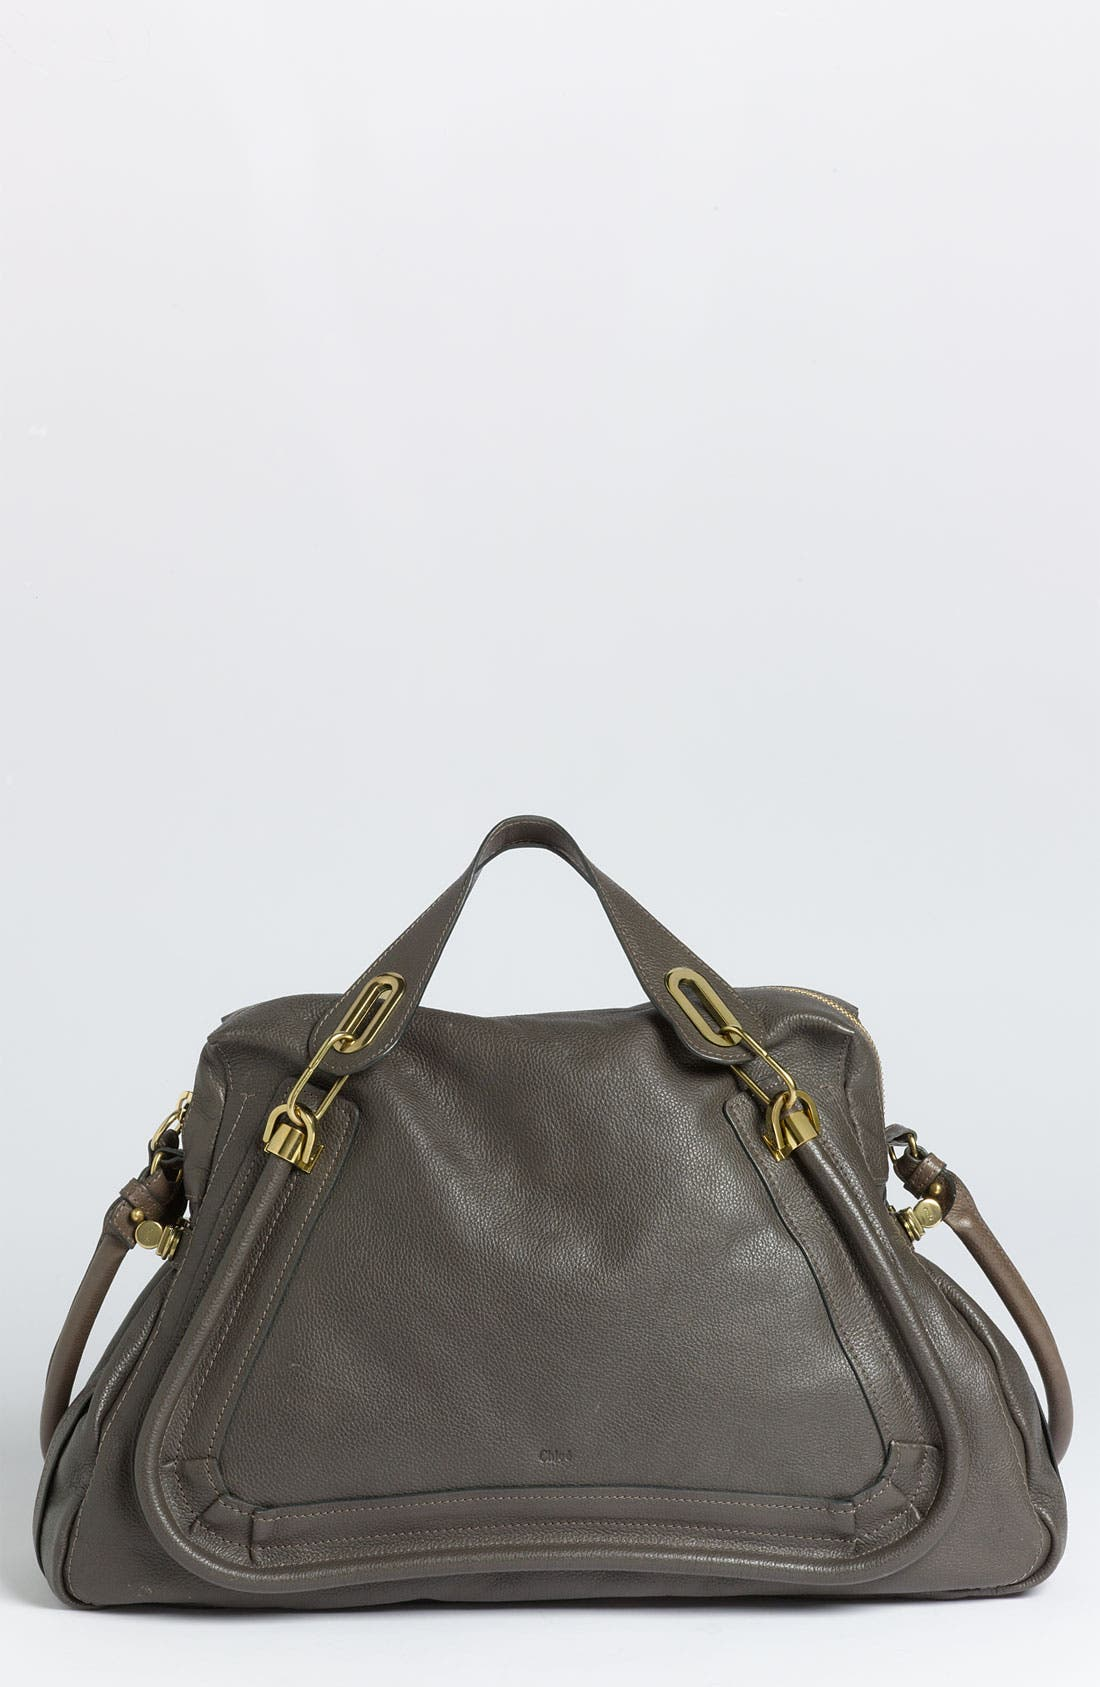 Main Image - Chloé 'Paraty - Large' Calfskin Leather Satchel